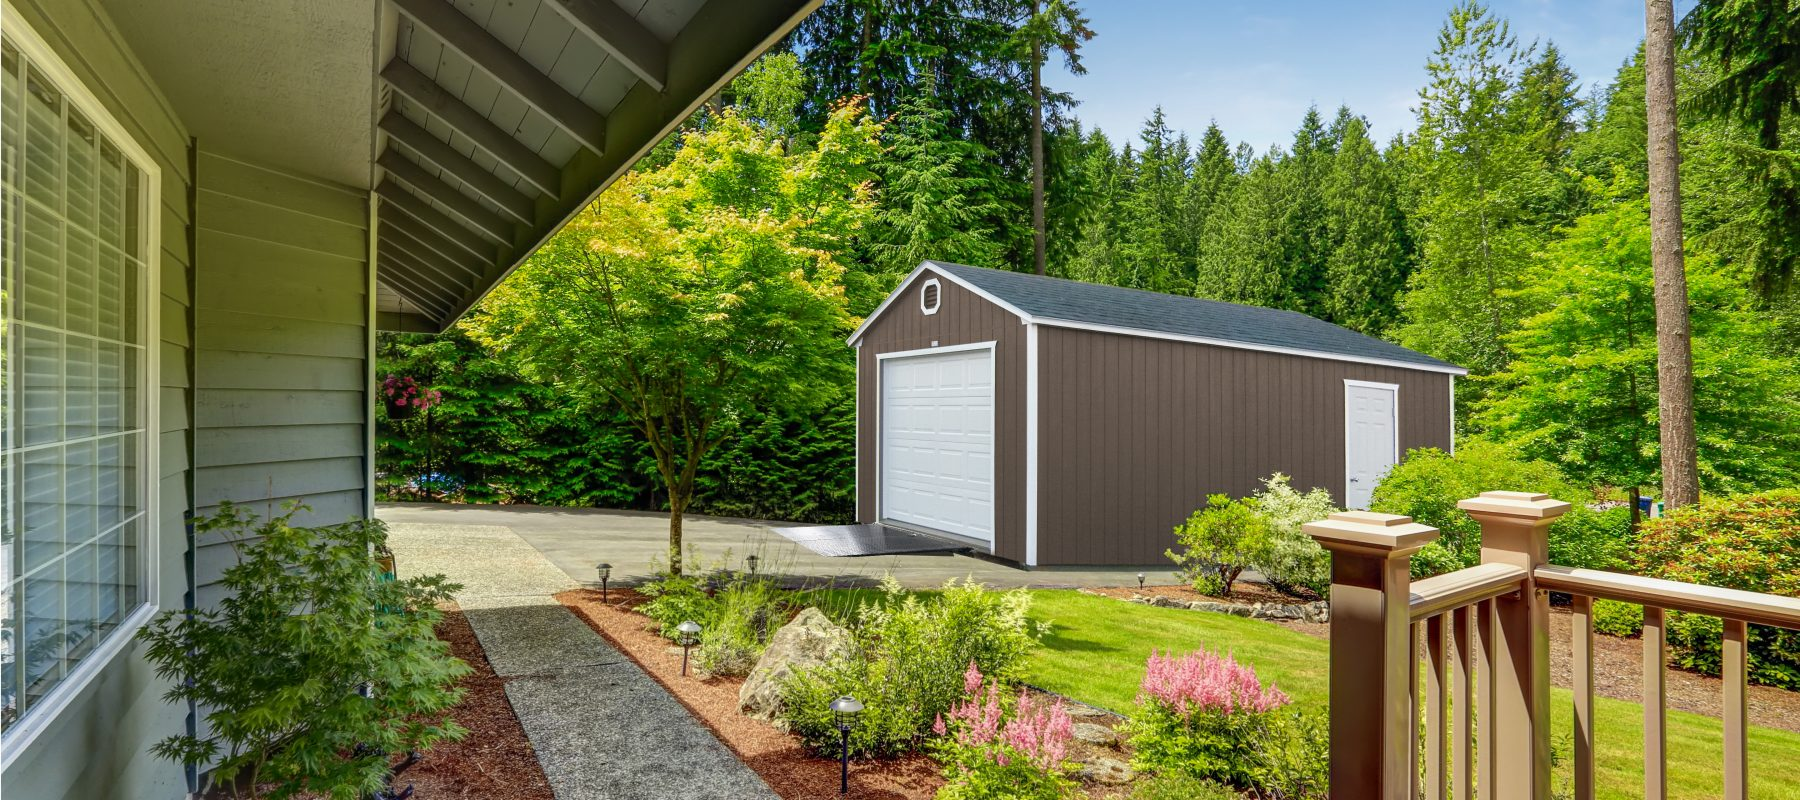 portable storage buildings near me oregon